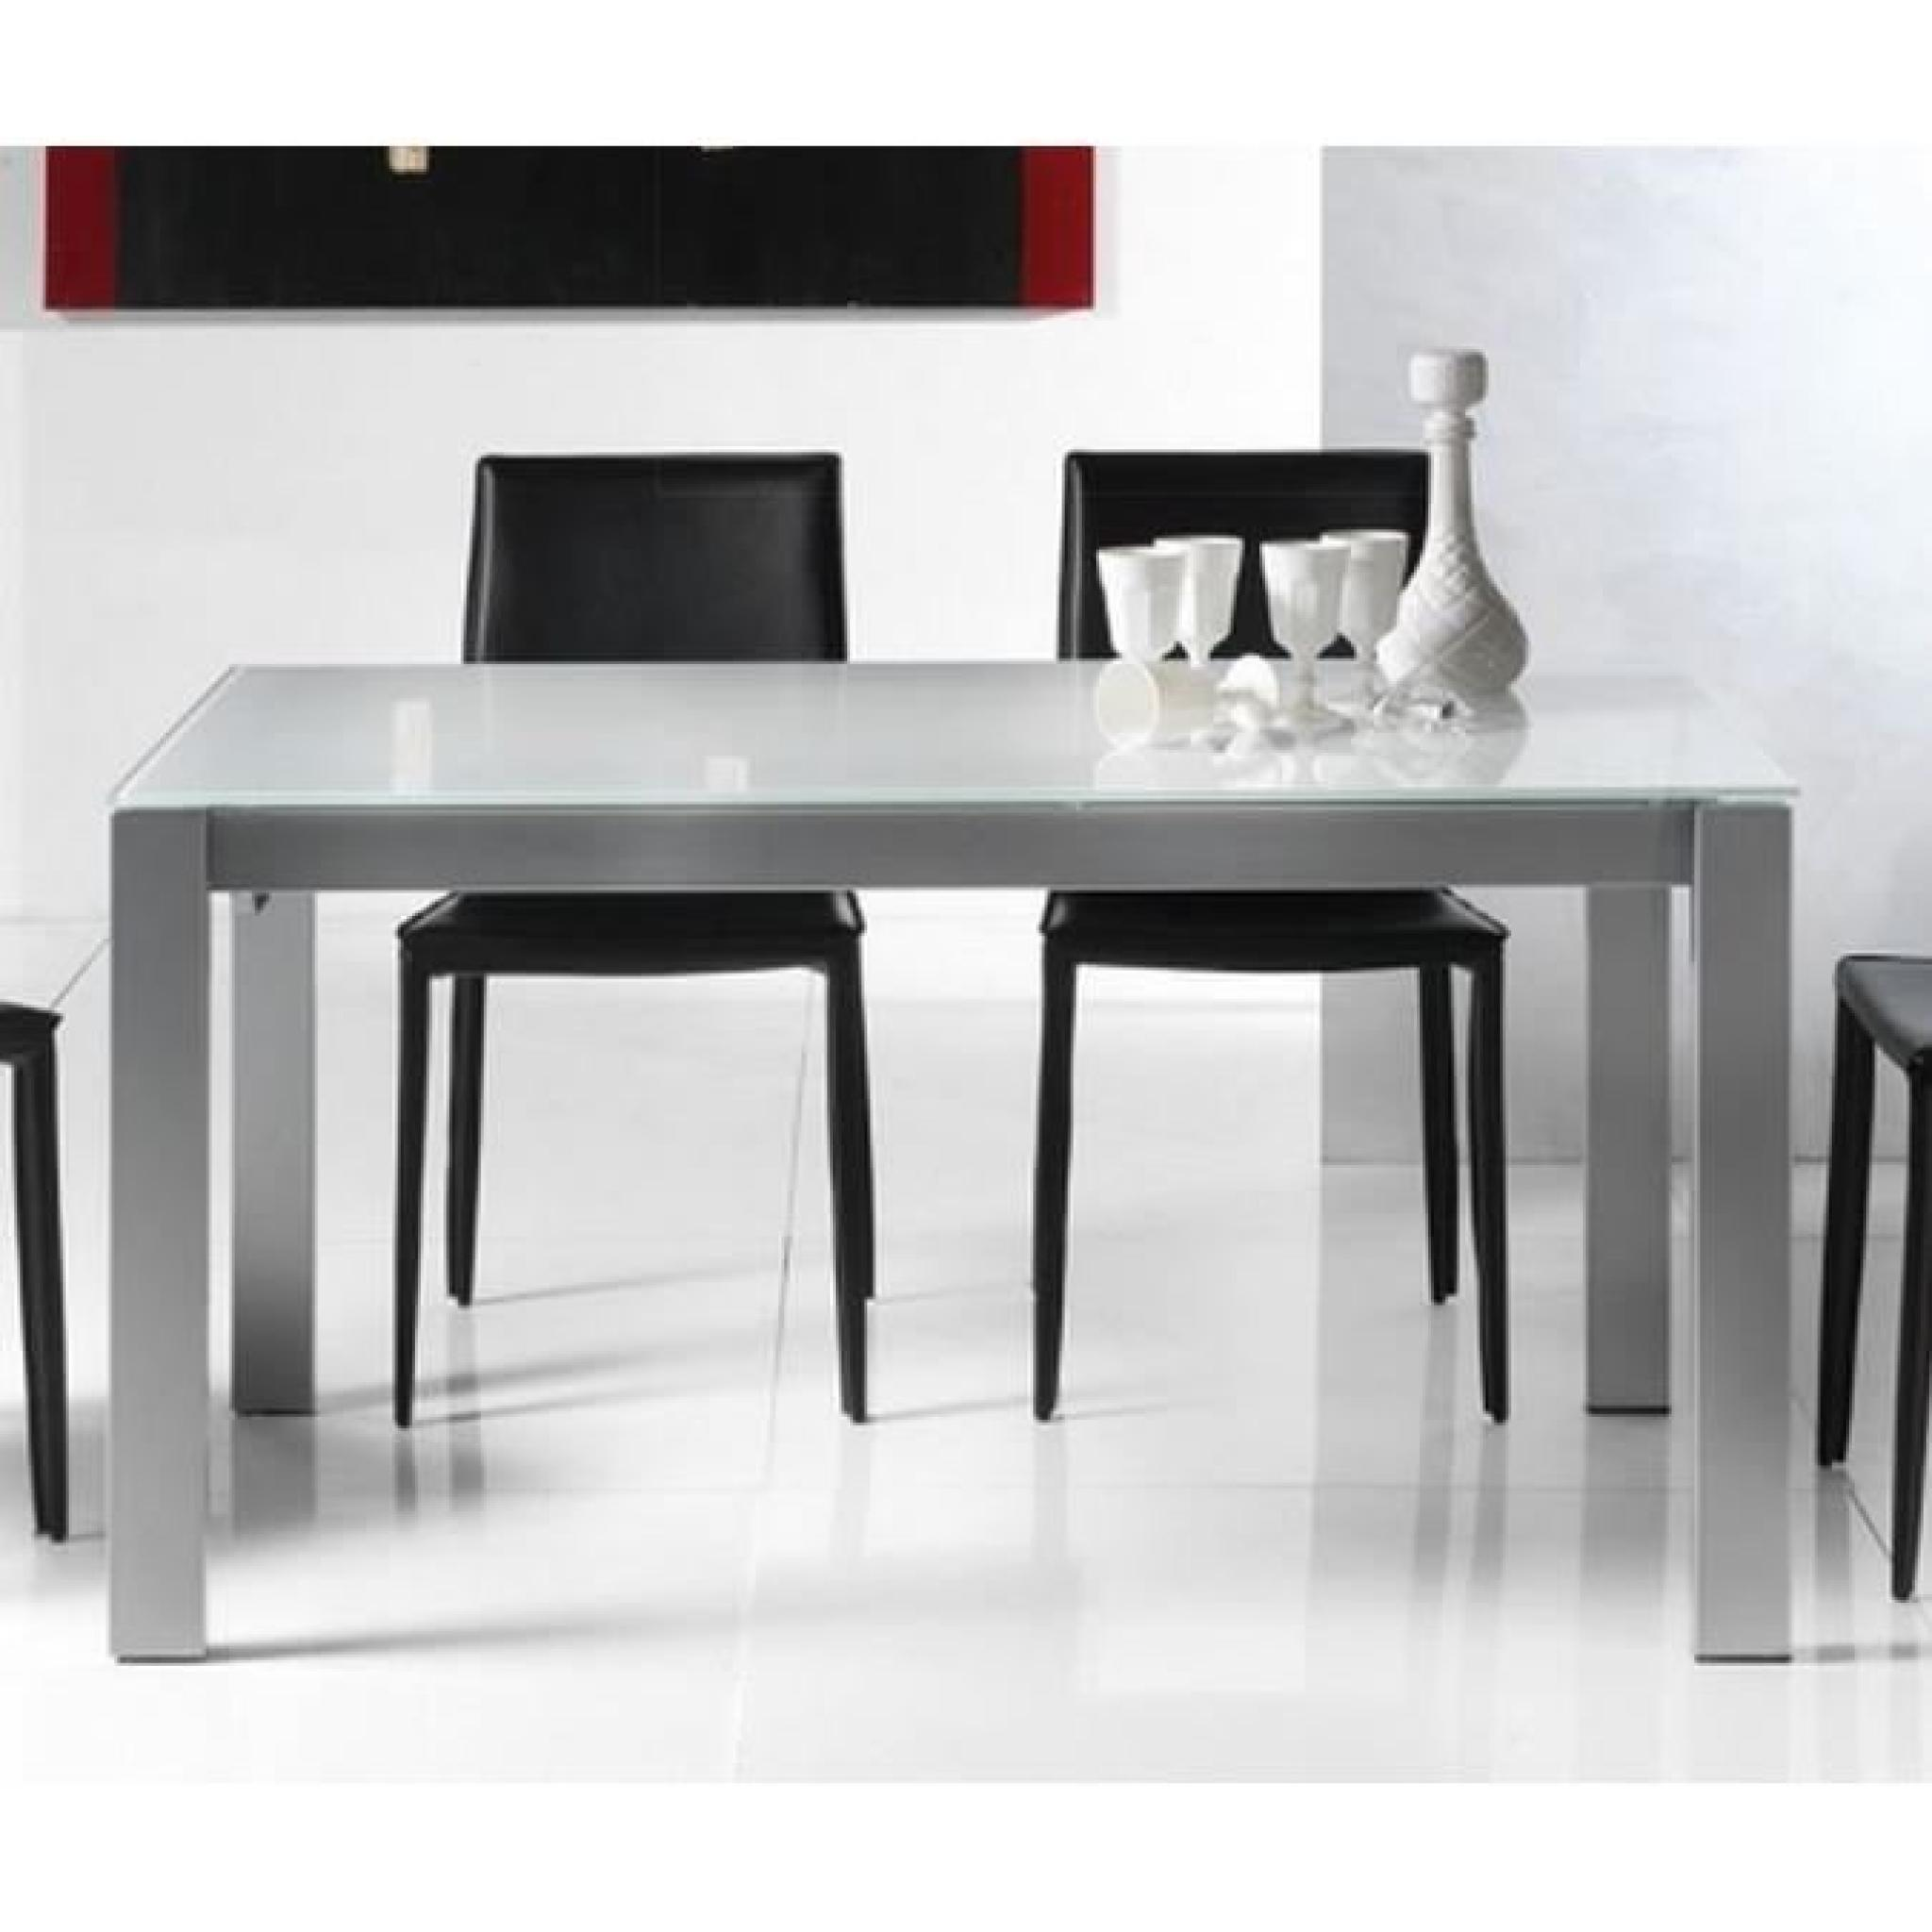 Table repas extensible twelve 140 x 85 cm verre achat for Table de repas design extensible